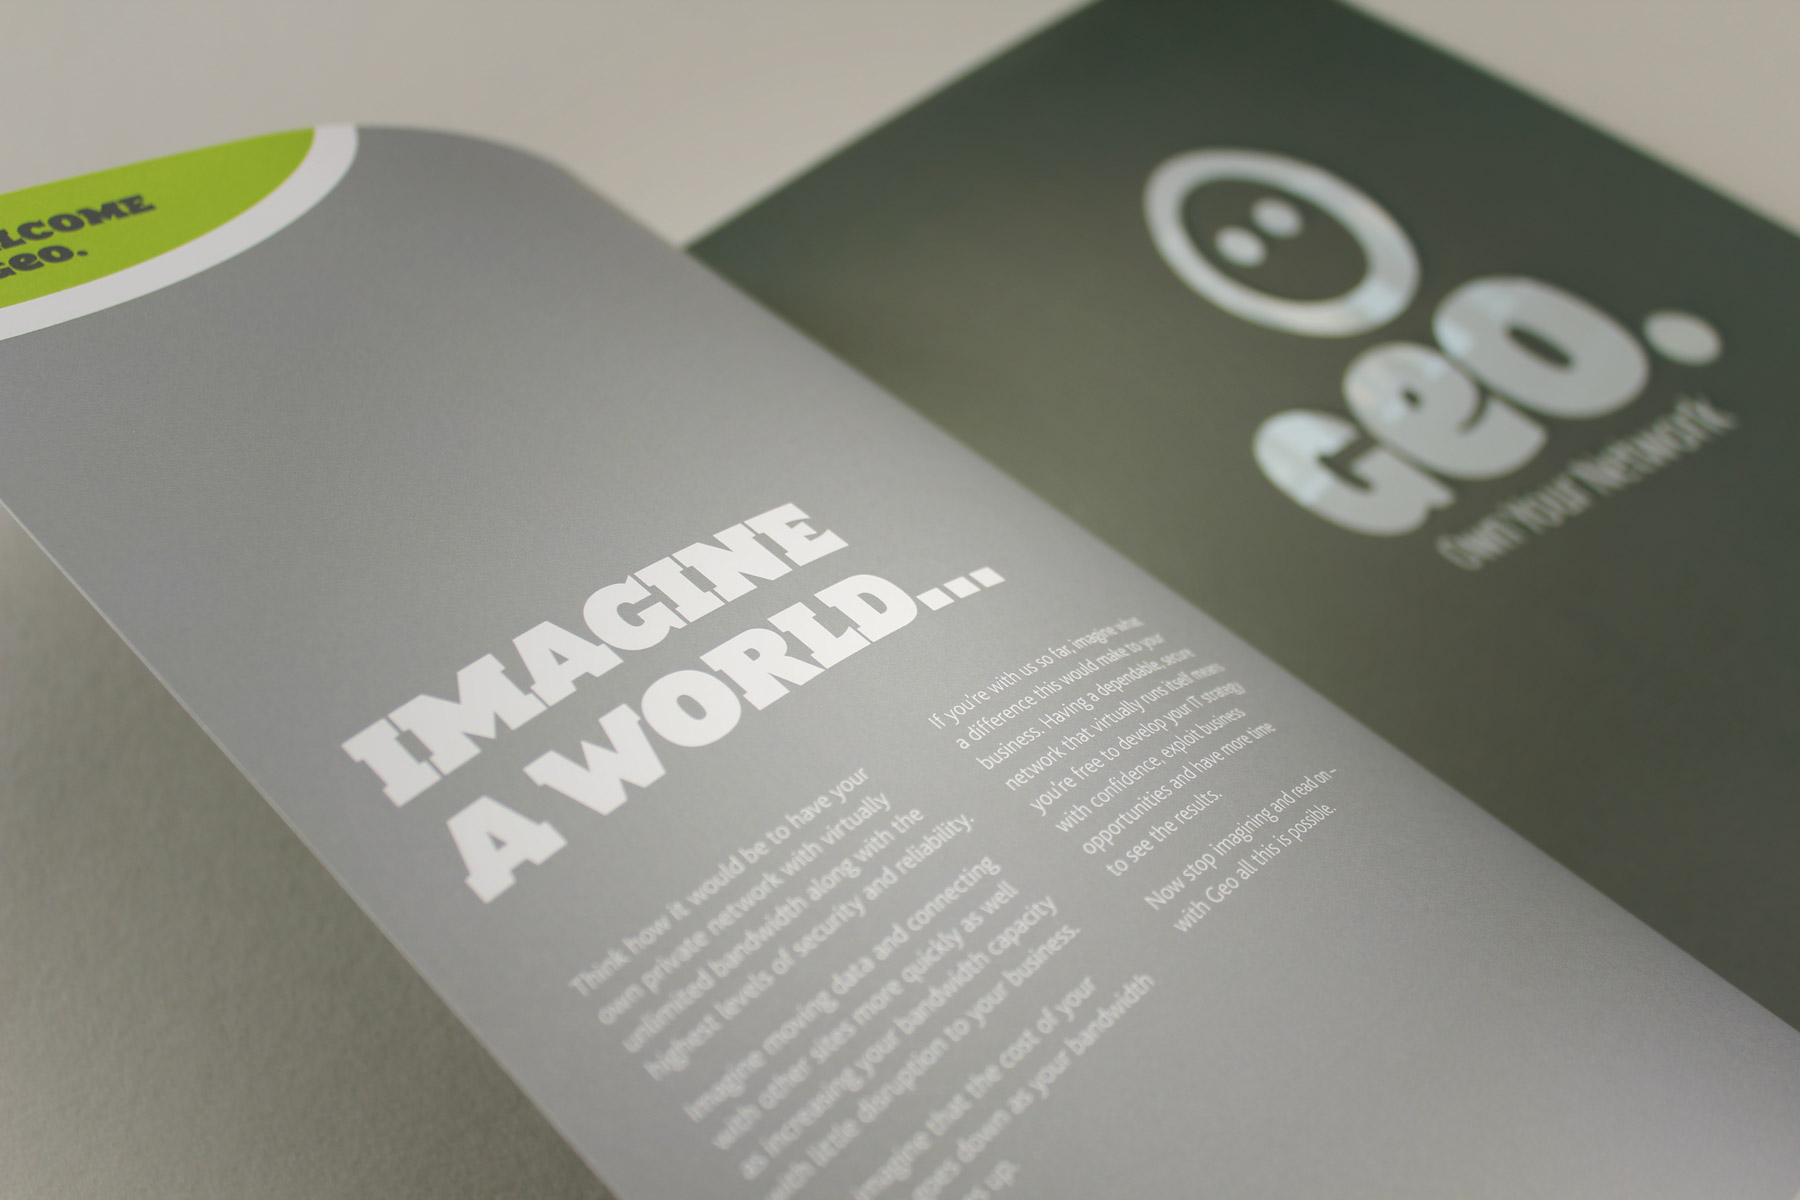 We used a combination of striking images and hard hitting copy to illustrate Geo's unique offering.